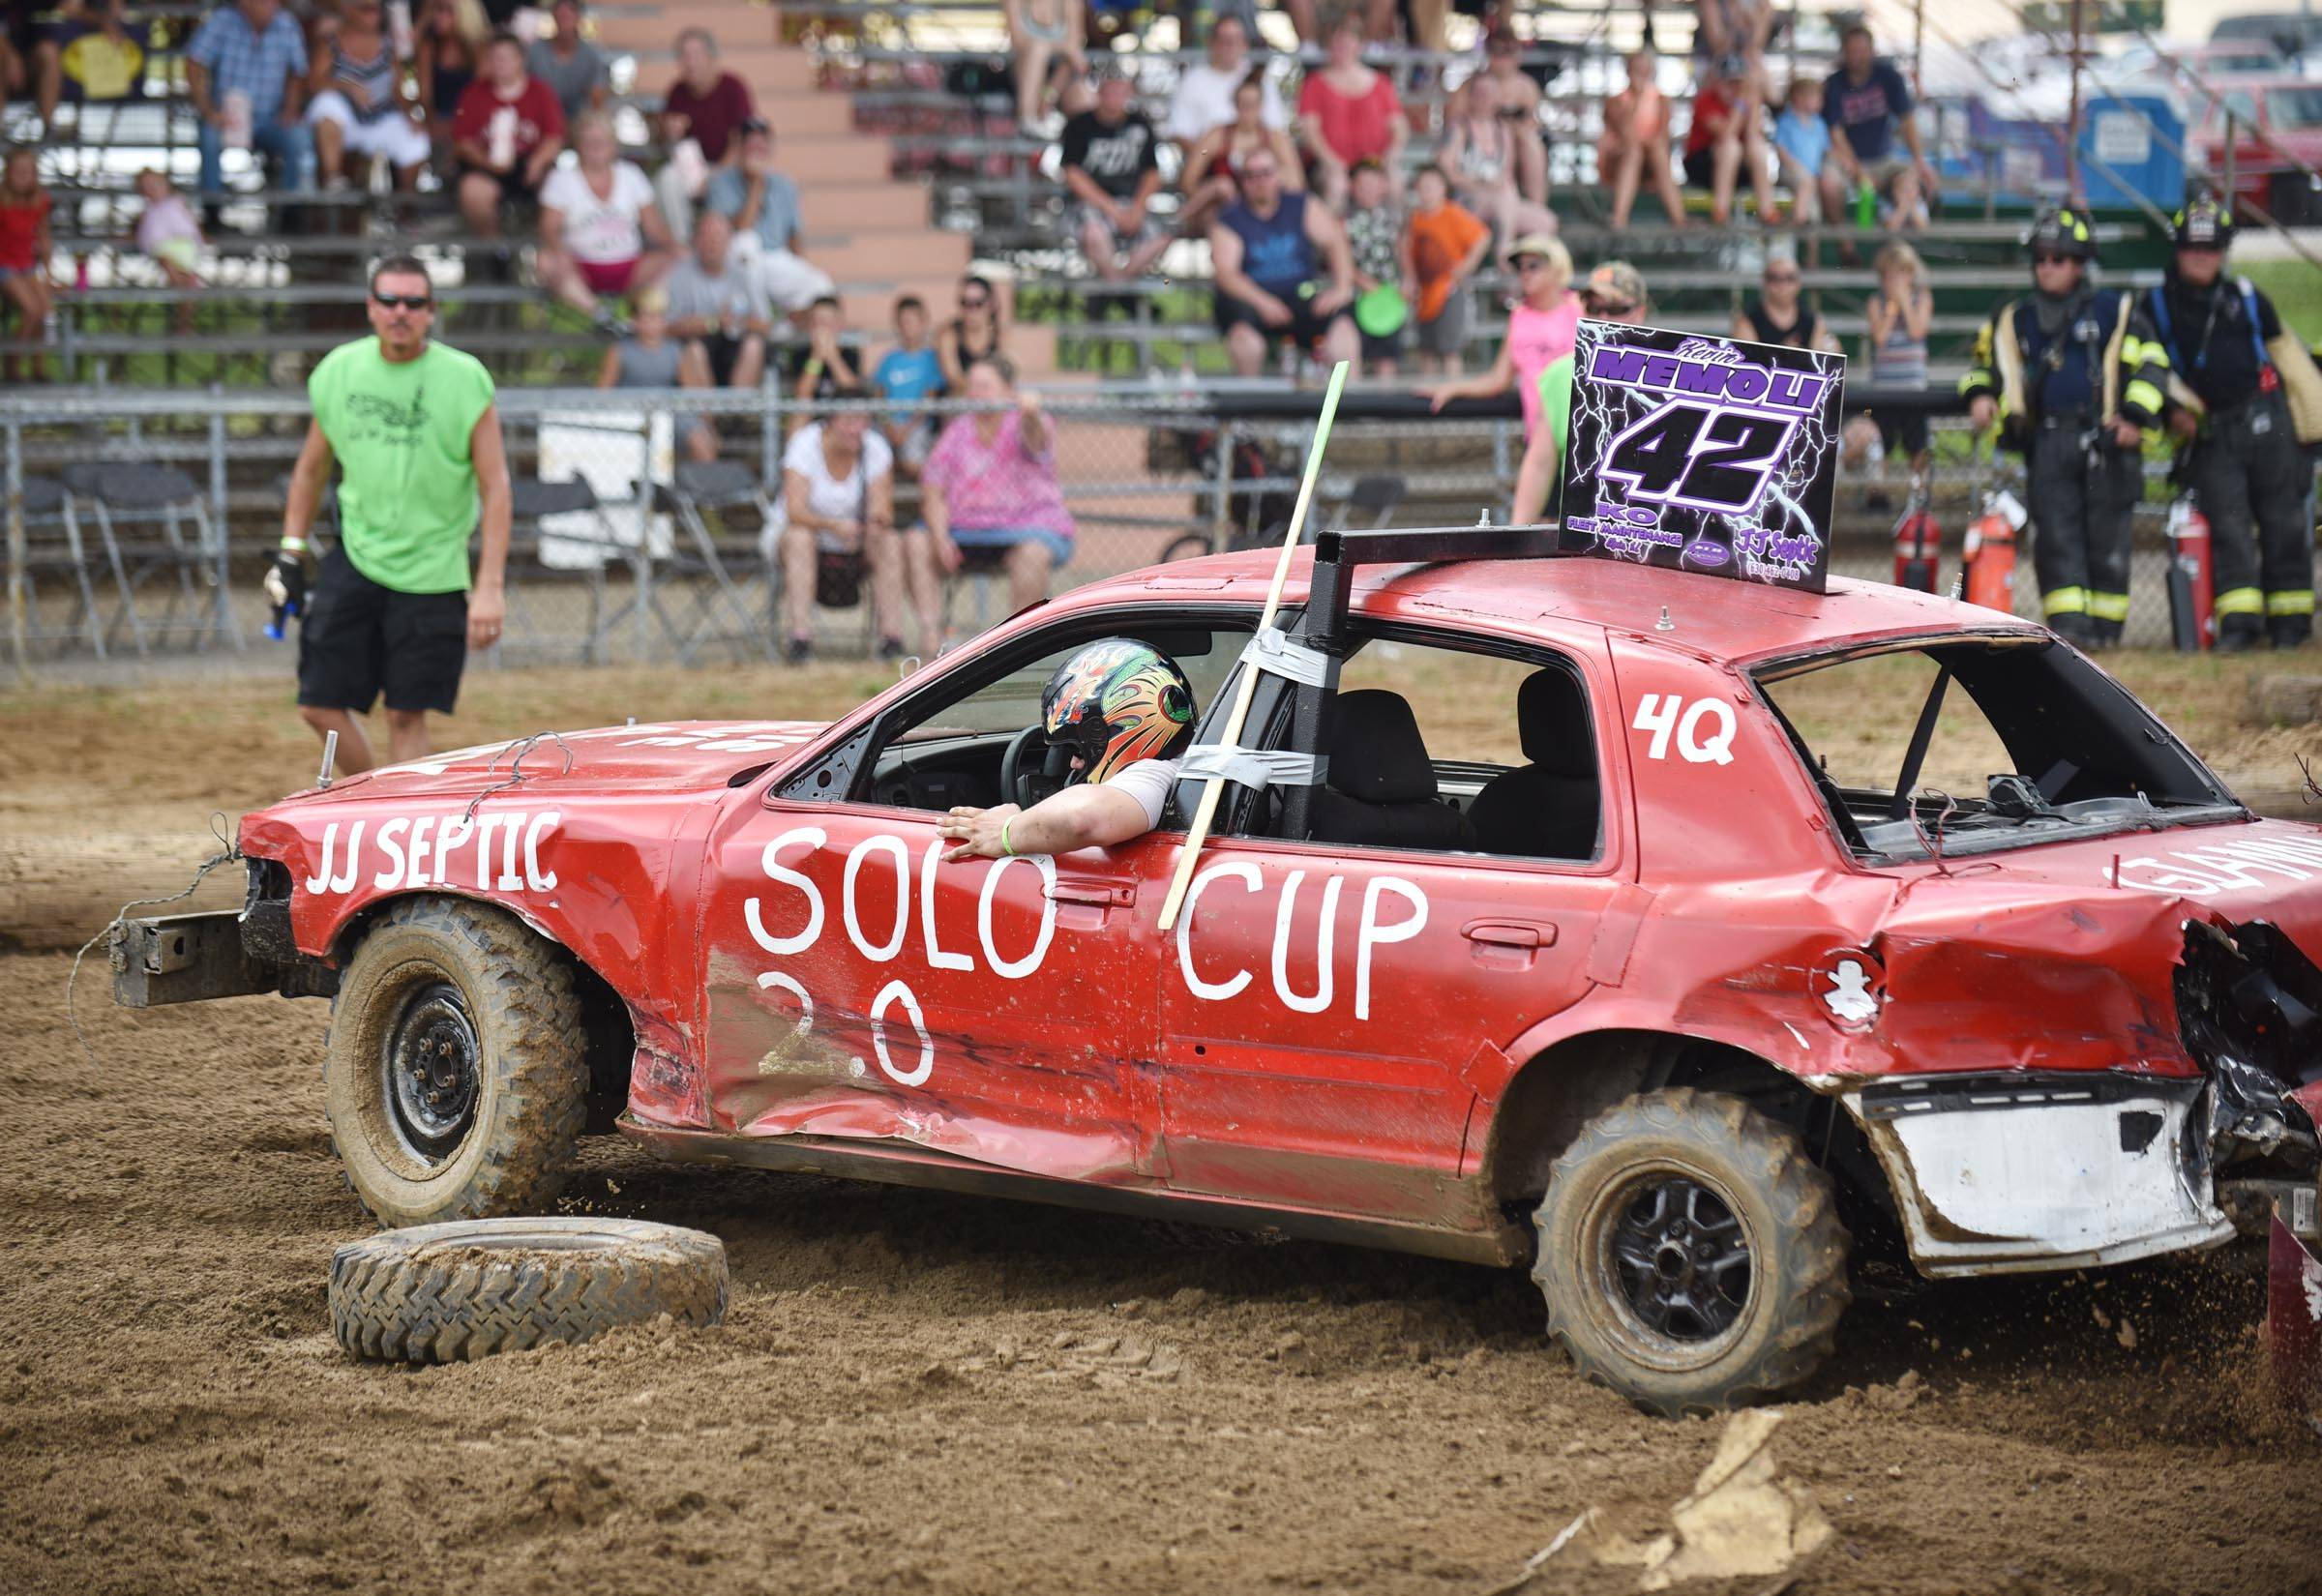 David Memoli, of Geneva looks at a wheel from the car of Brad Ellingsworth of Bolingbrook at the Kane County Fair demolition derby last year. Memoli knocked the wheel off Ellingsworth's car with a powerful hit seconds earlier. Memoli won the heat and advanced to the final.